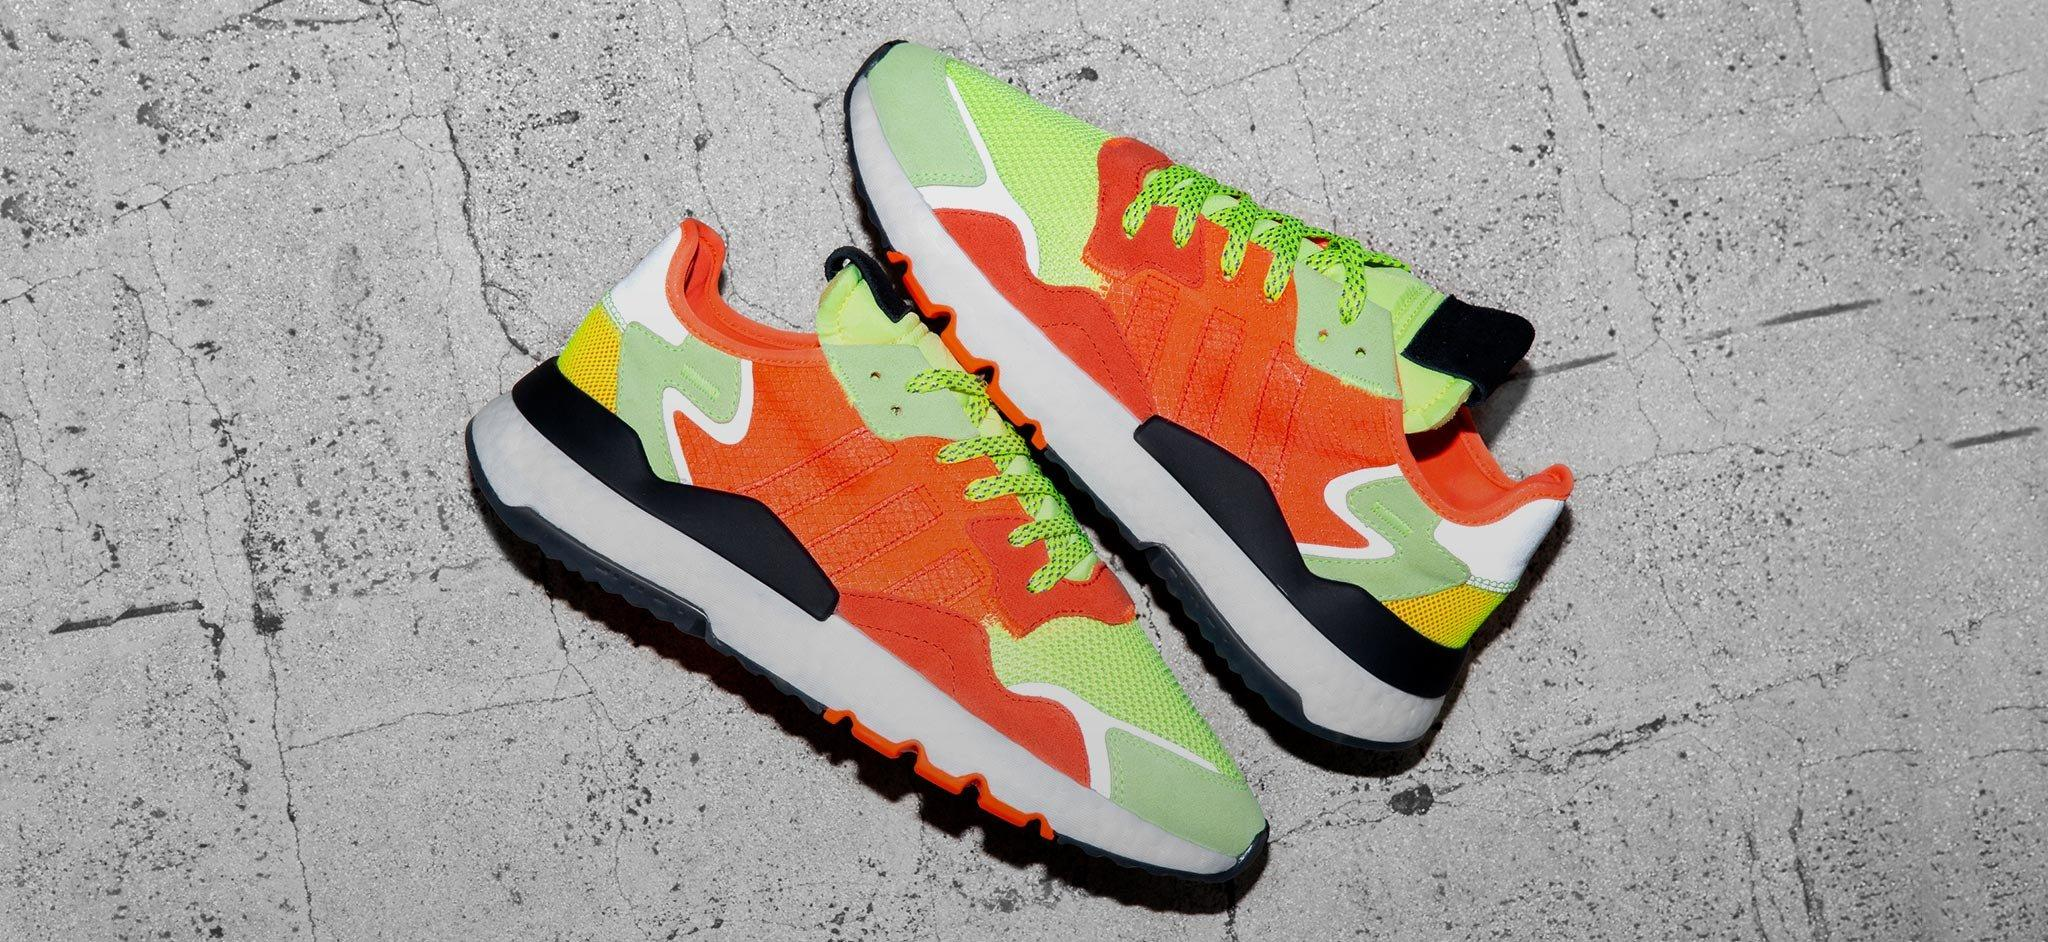 adidas Originals Nite Jogger  Road Safety  - size  Exclusive 2954fed885